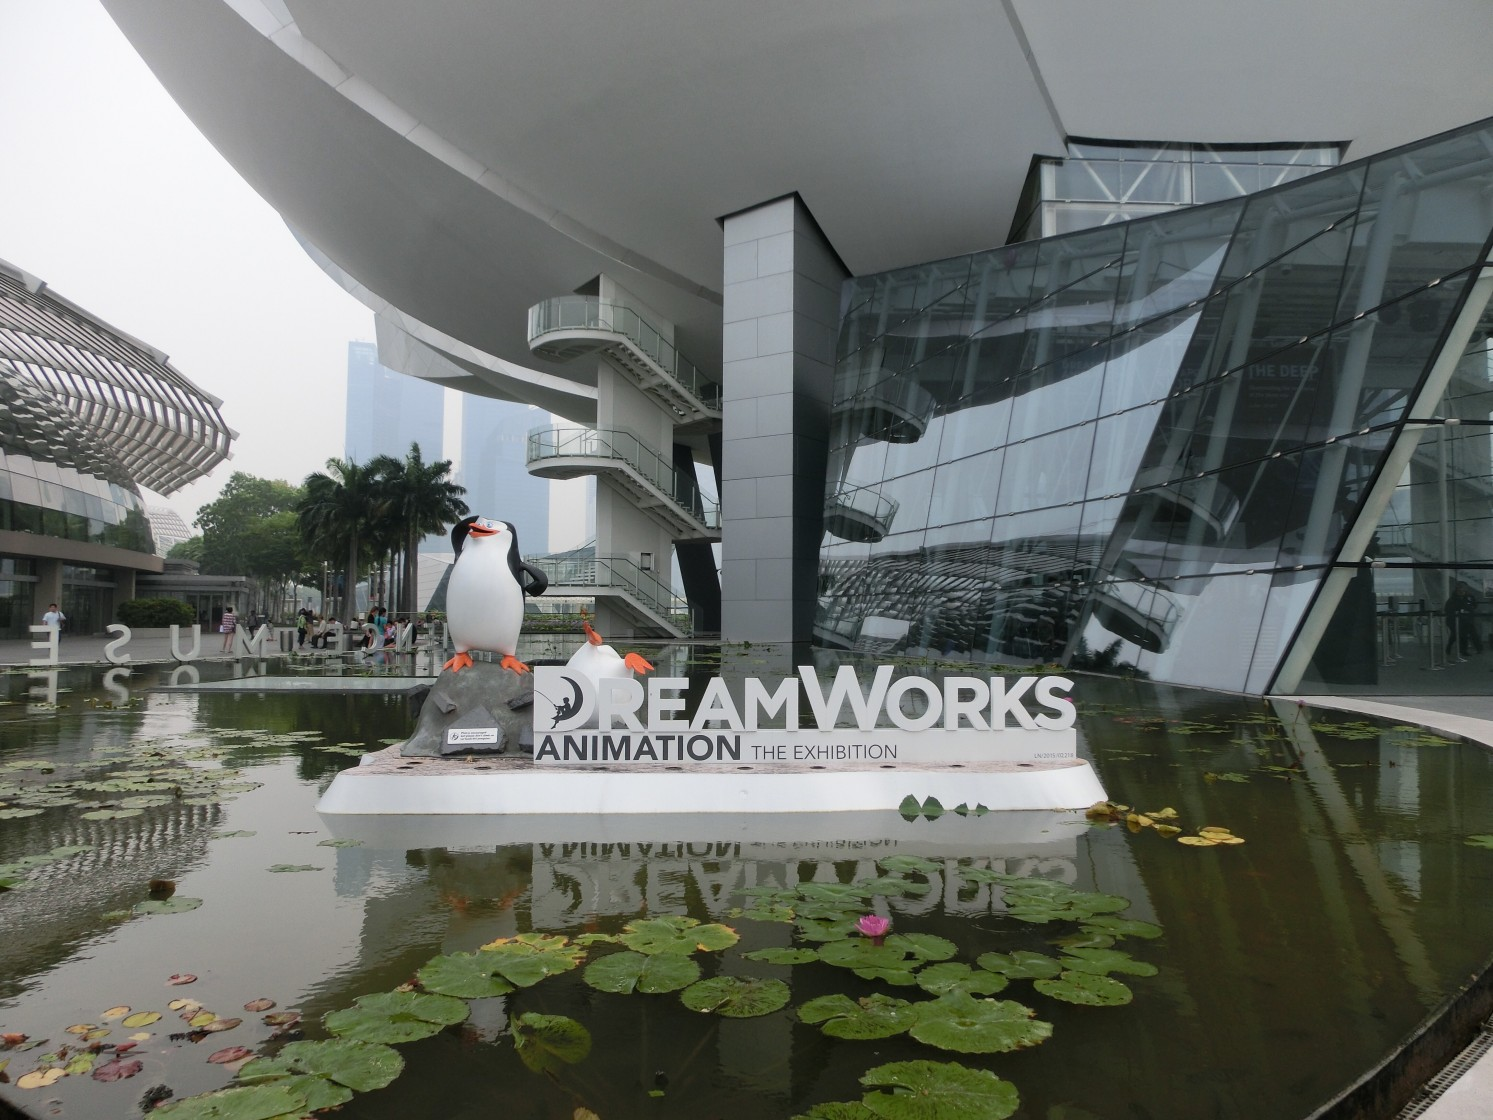 Dreamworks A Peek into the Life of Animation